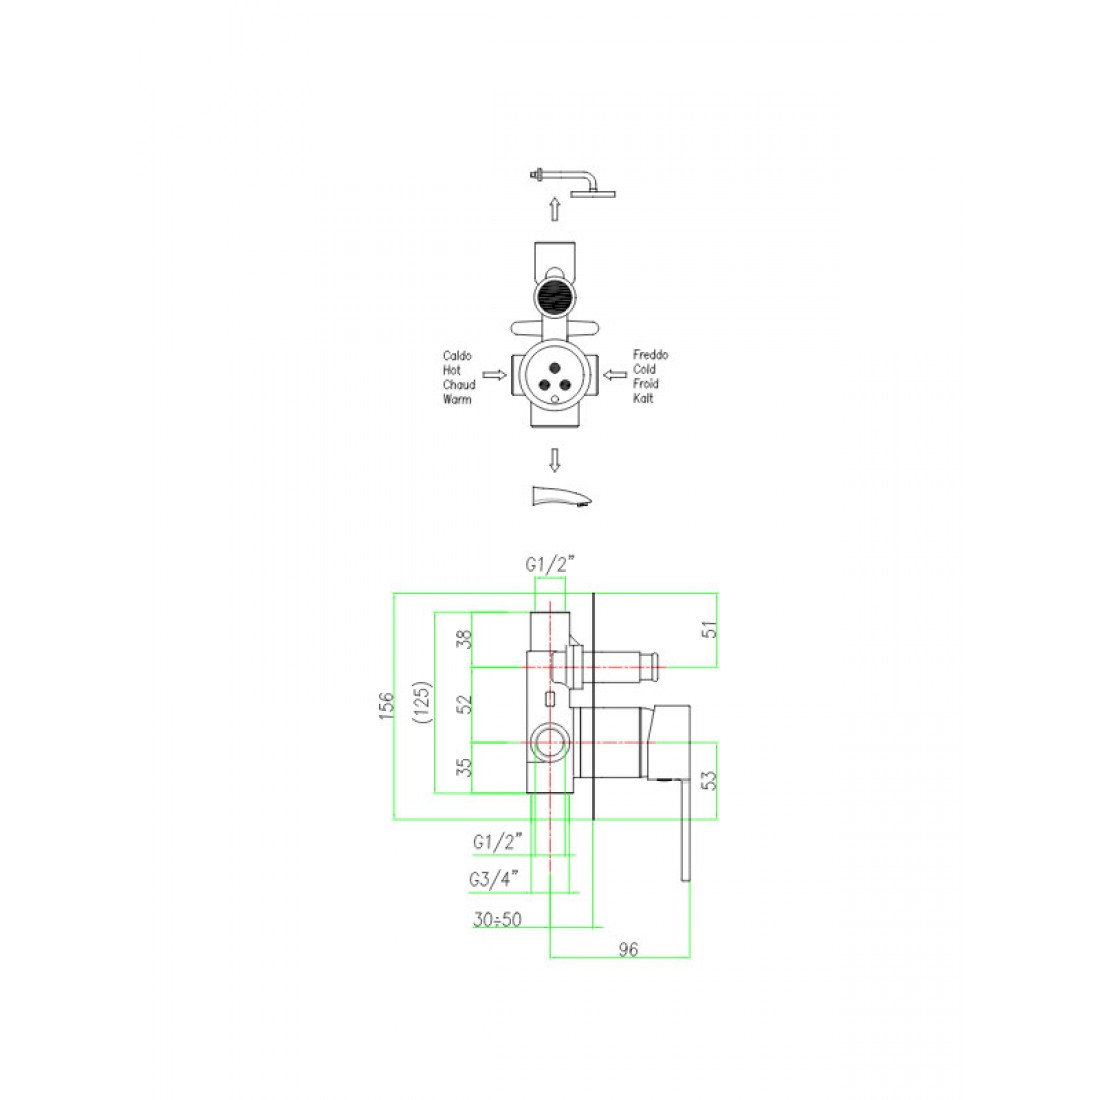 Katana Built In Shower Mixer With Diverter 77 Fiore Schematic Faucets